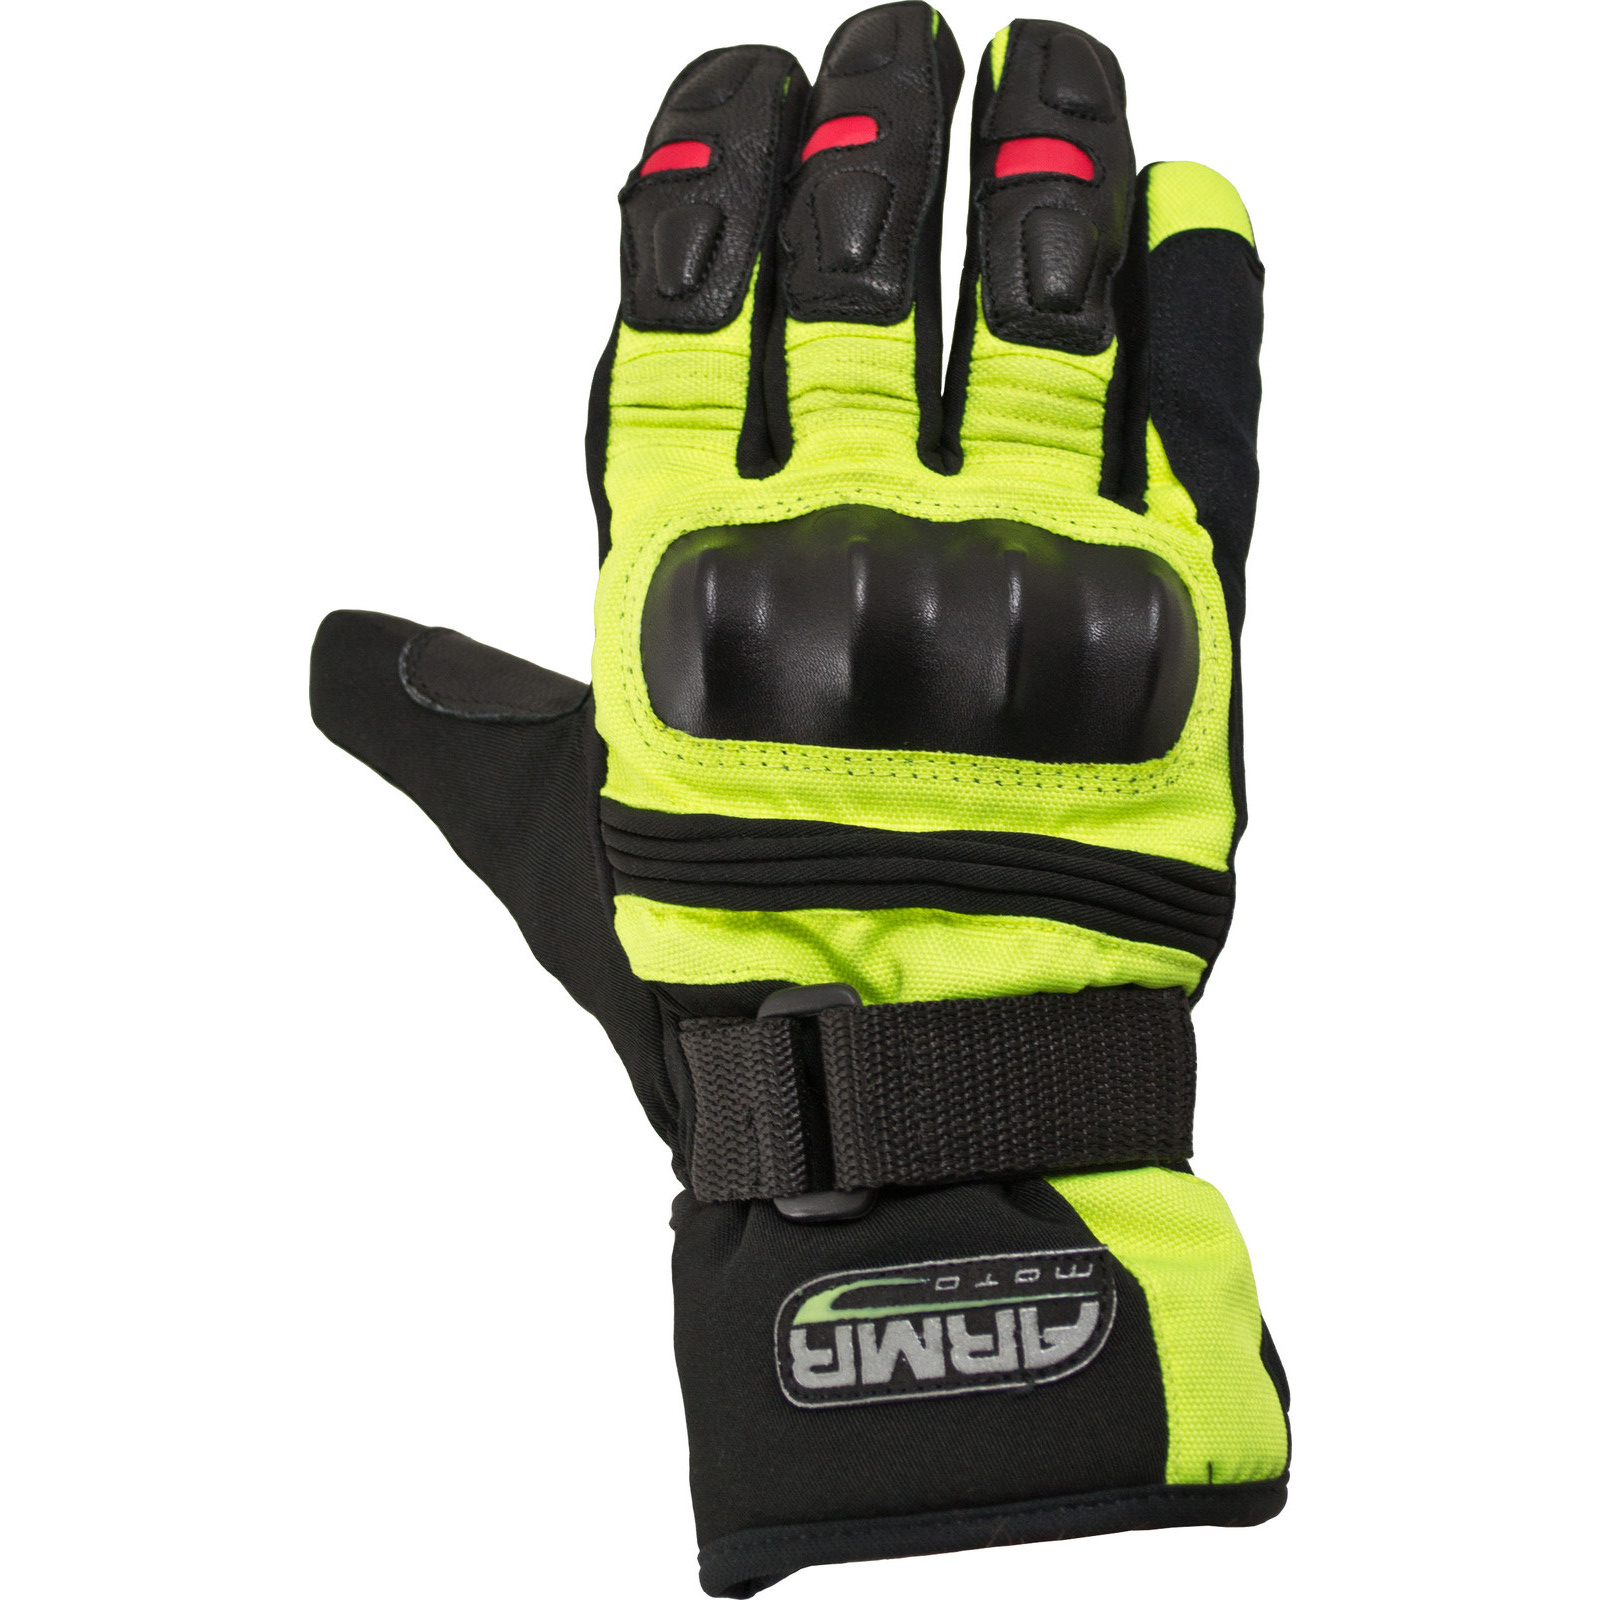 Motorcycle gloves thinsulate - Your Pick